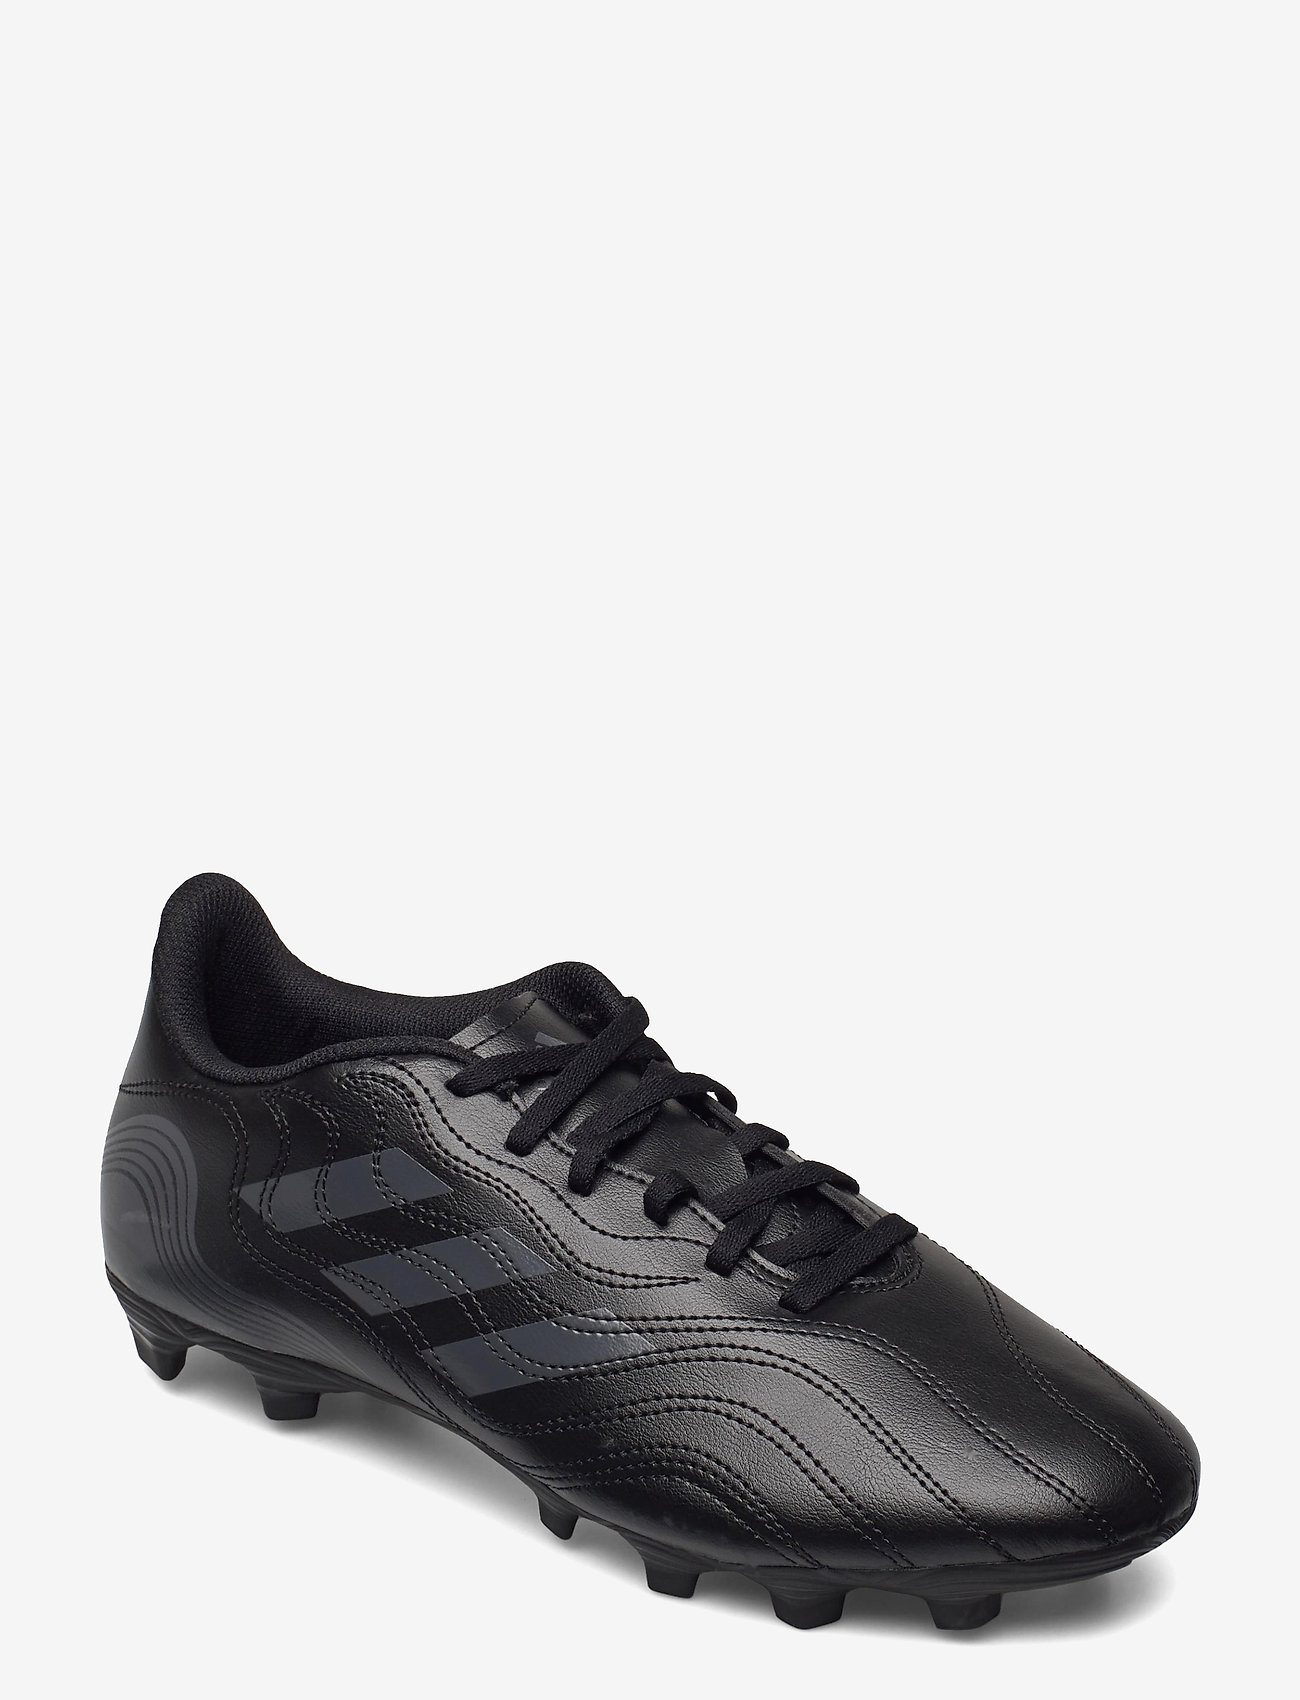 adidas Performance - Copa Sense.4 Flexible Ground Boots - fodboldsko - cblack/gresix/cblack - 0